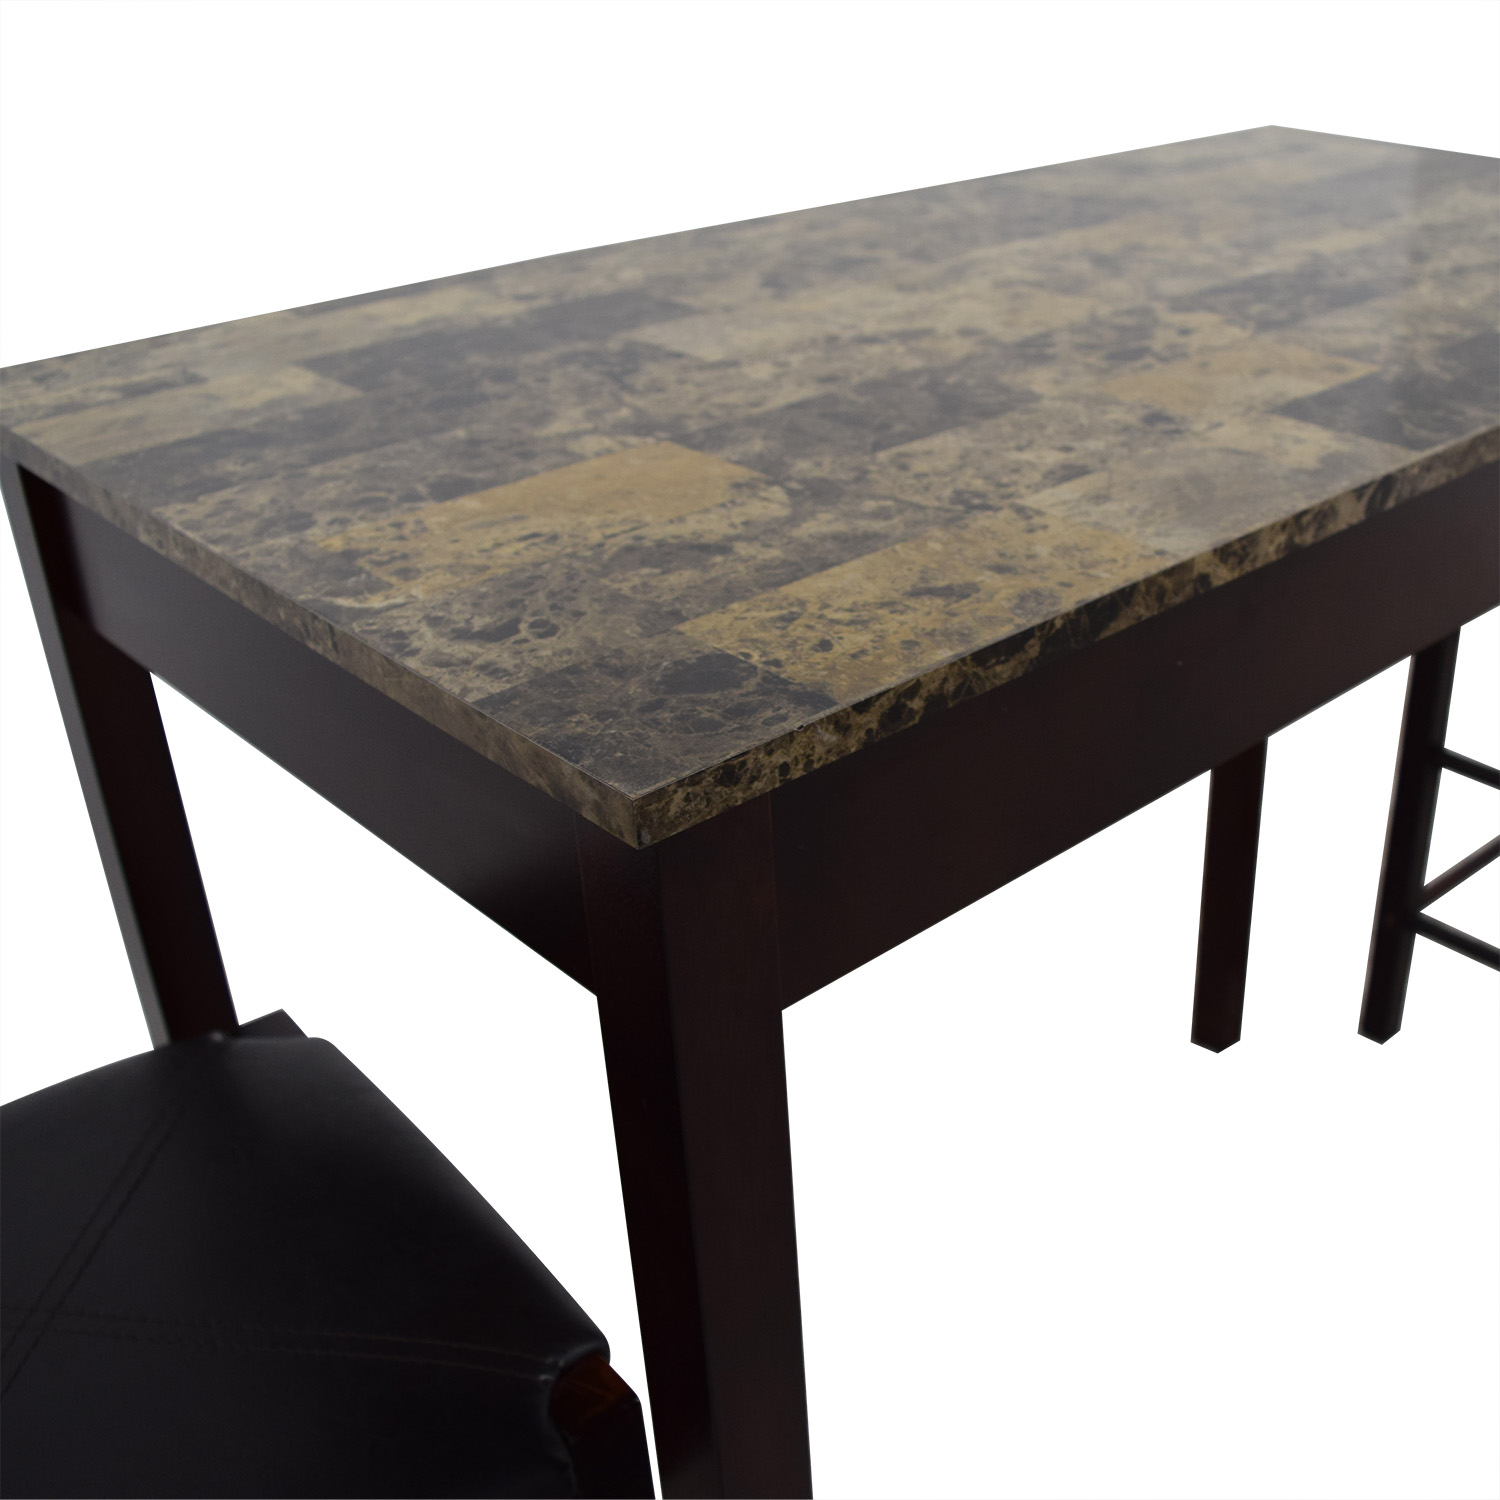 Linon Home Decor Linon Home Decor Tavern Marble Table and Stools for sale